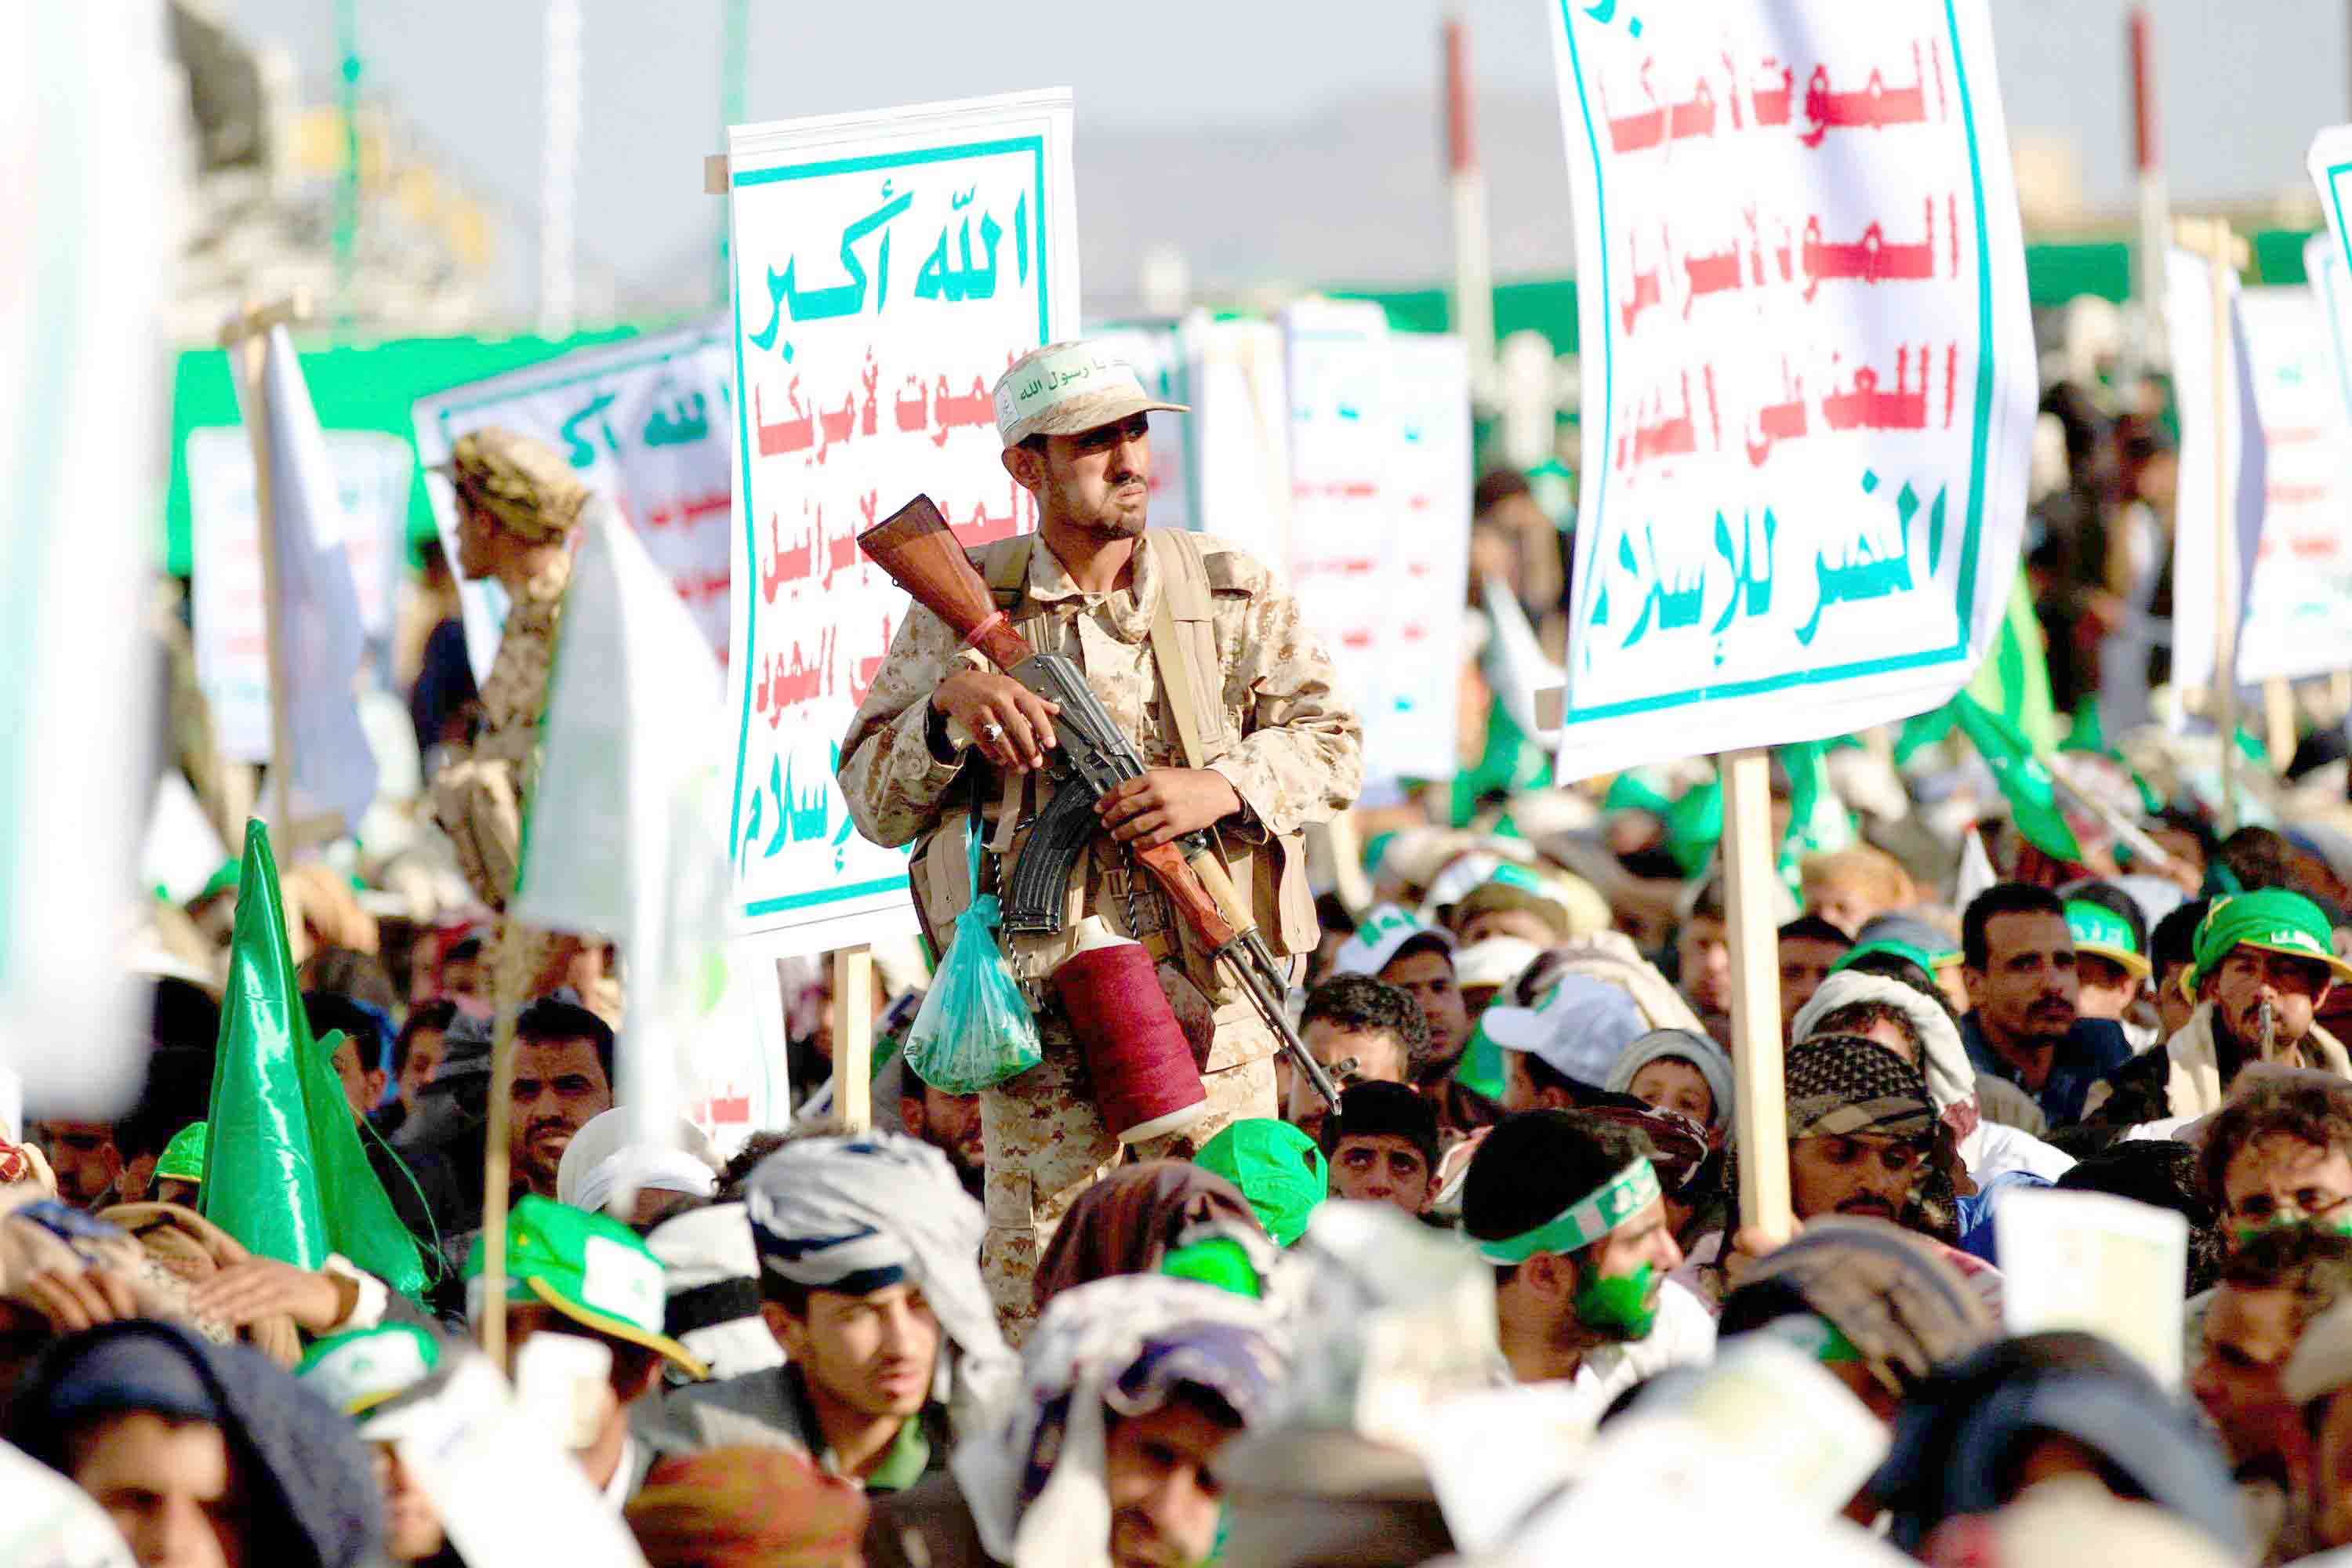 A Houthi fighter secures a rally in Sana'a, on November 20. (AFP)